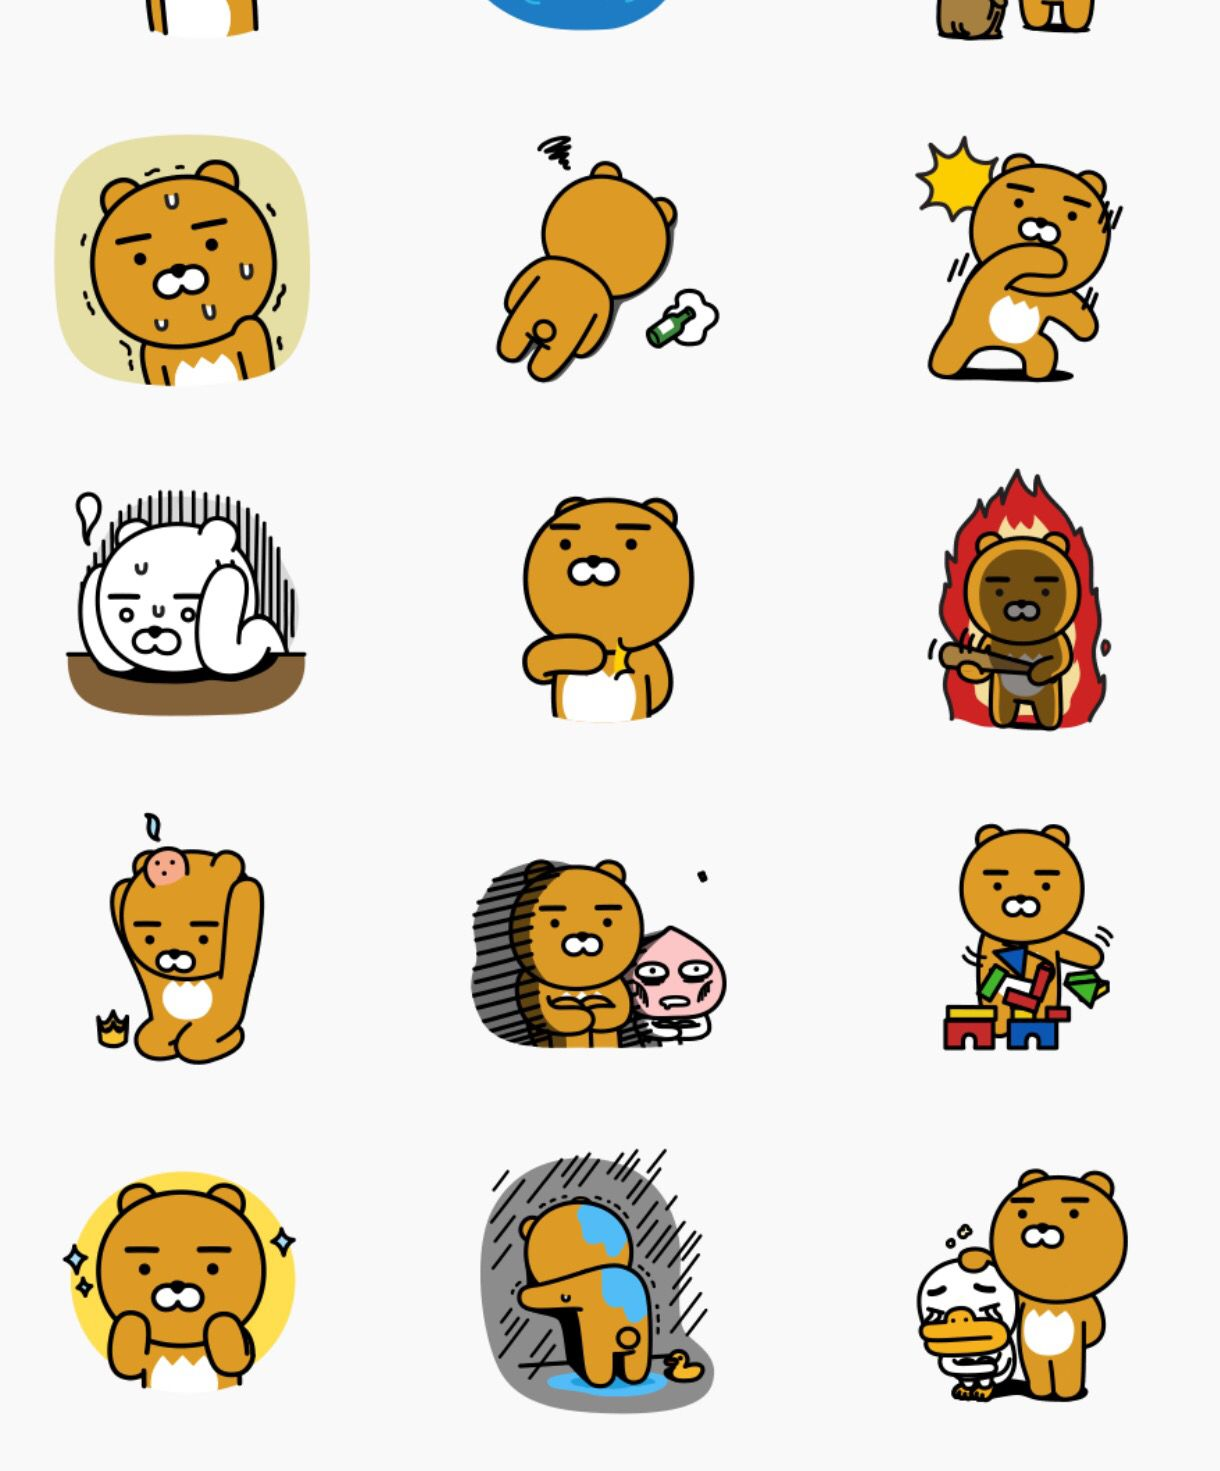 Pin by Oneiro Chen on CHARACTER Graphic design logo